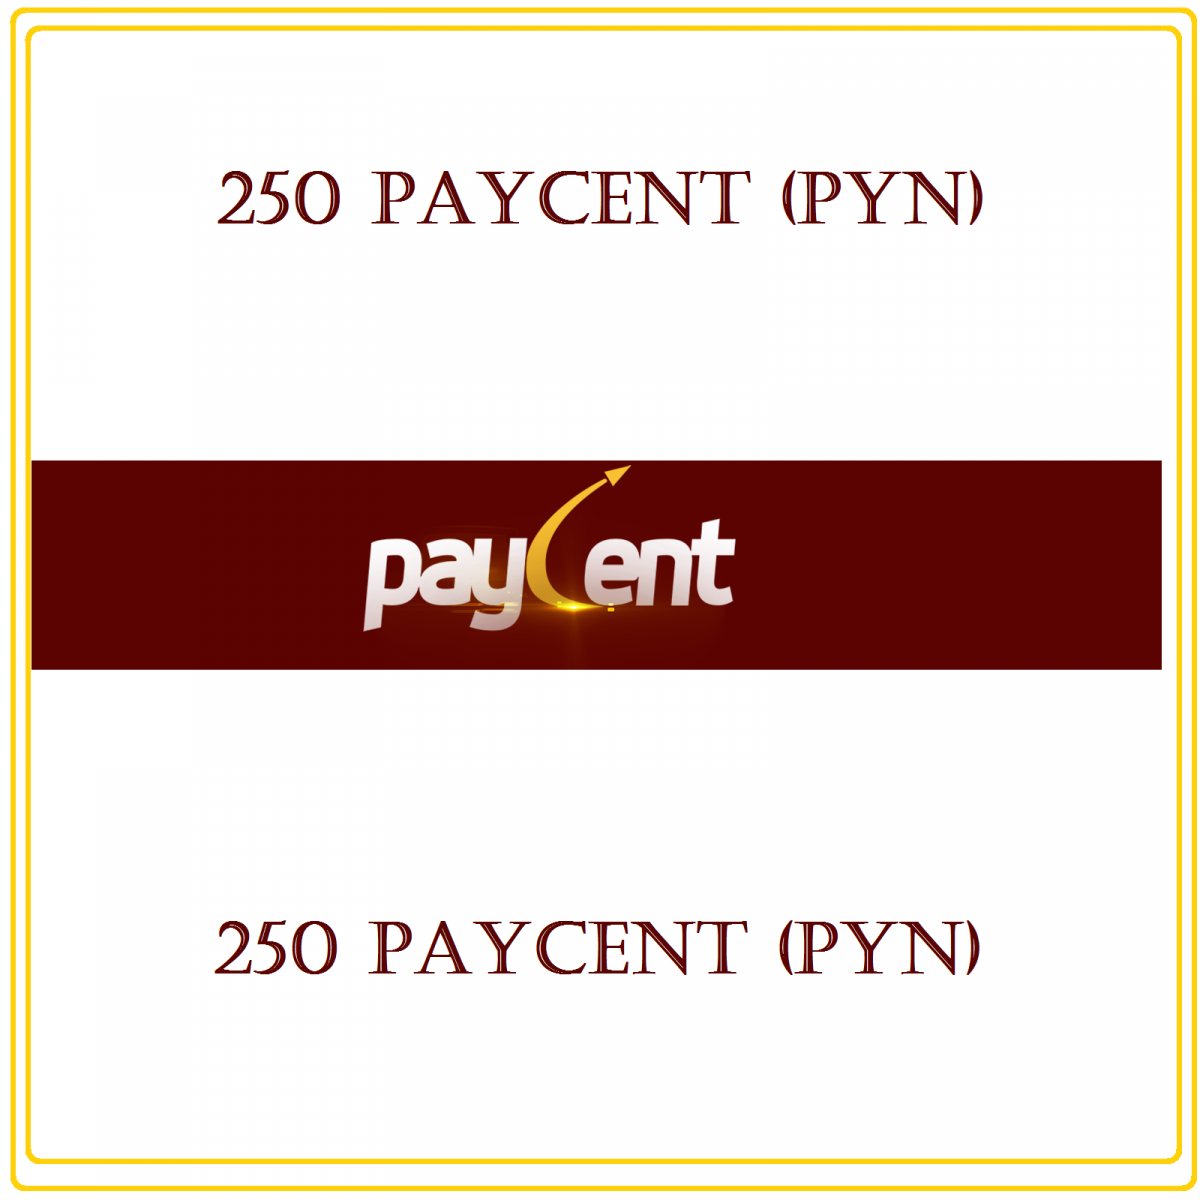 250 PAYCENT (PYN) Mining Contract